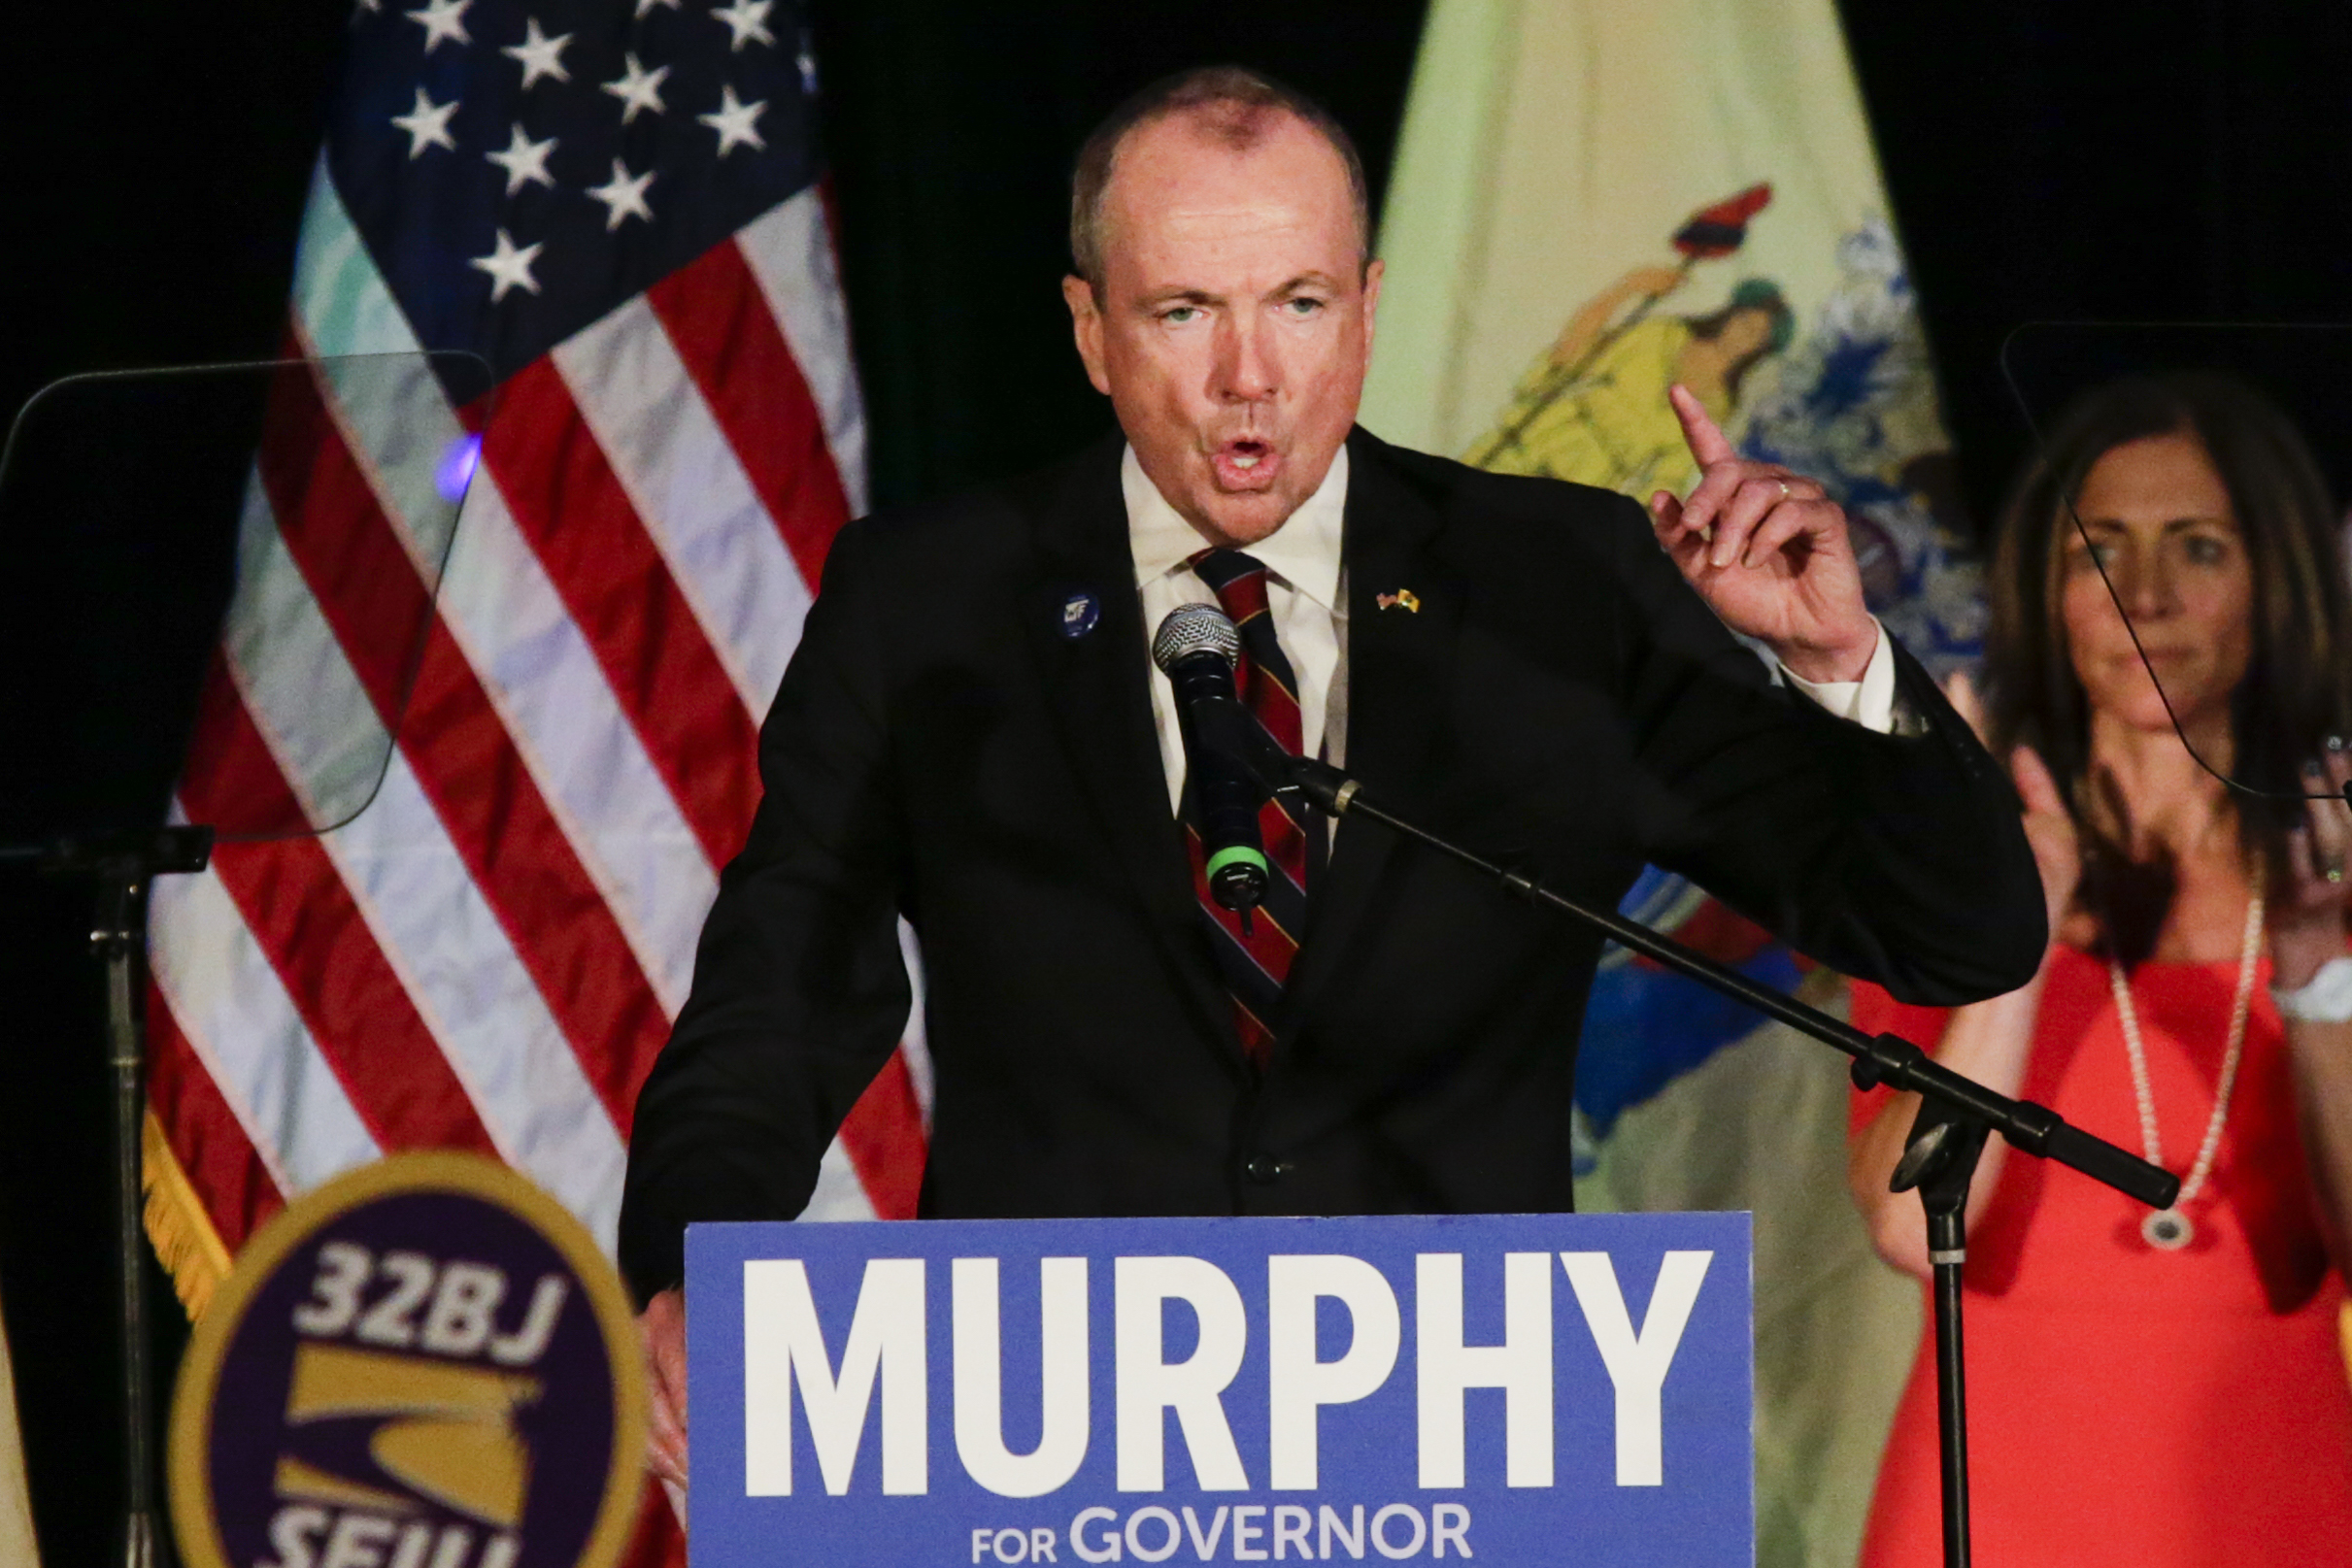 New Jersey Gov.-elect Phil Murphy speaks at an election night rally on November 7, 2017, in Asbury Park, New Jersey. Murphy was projected an early winner over Republican Lt. Gov. Kim Guadagno. (Getty Images)